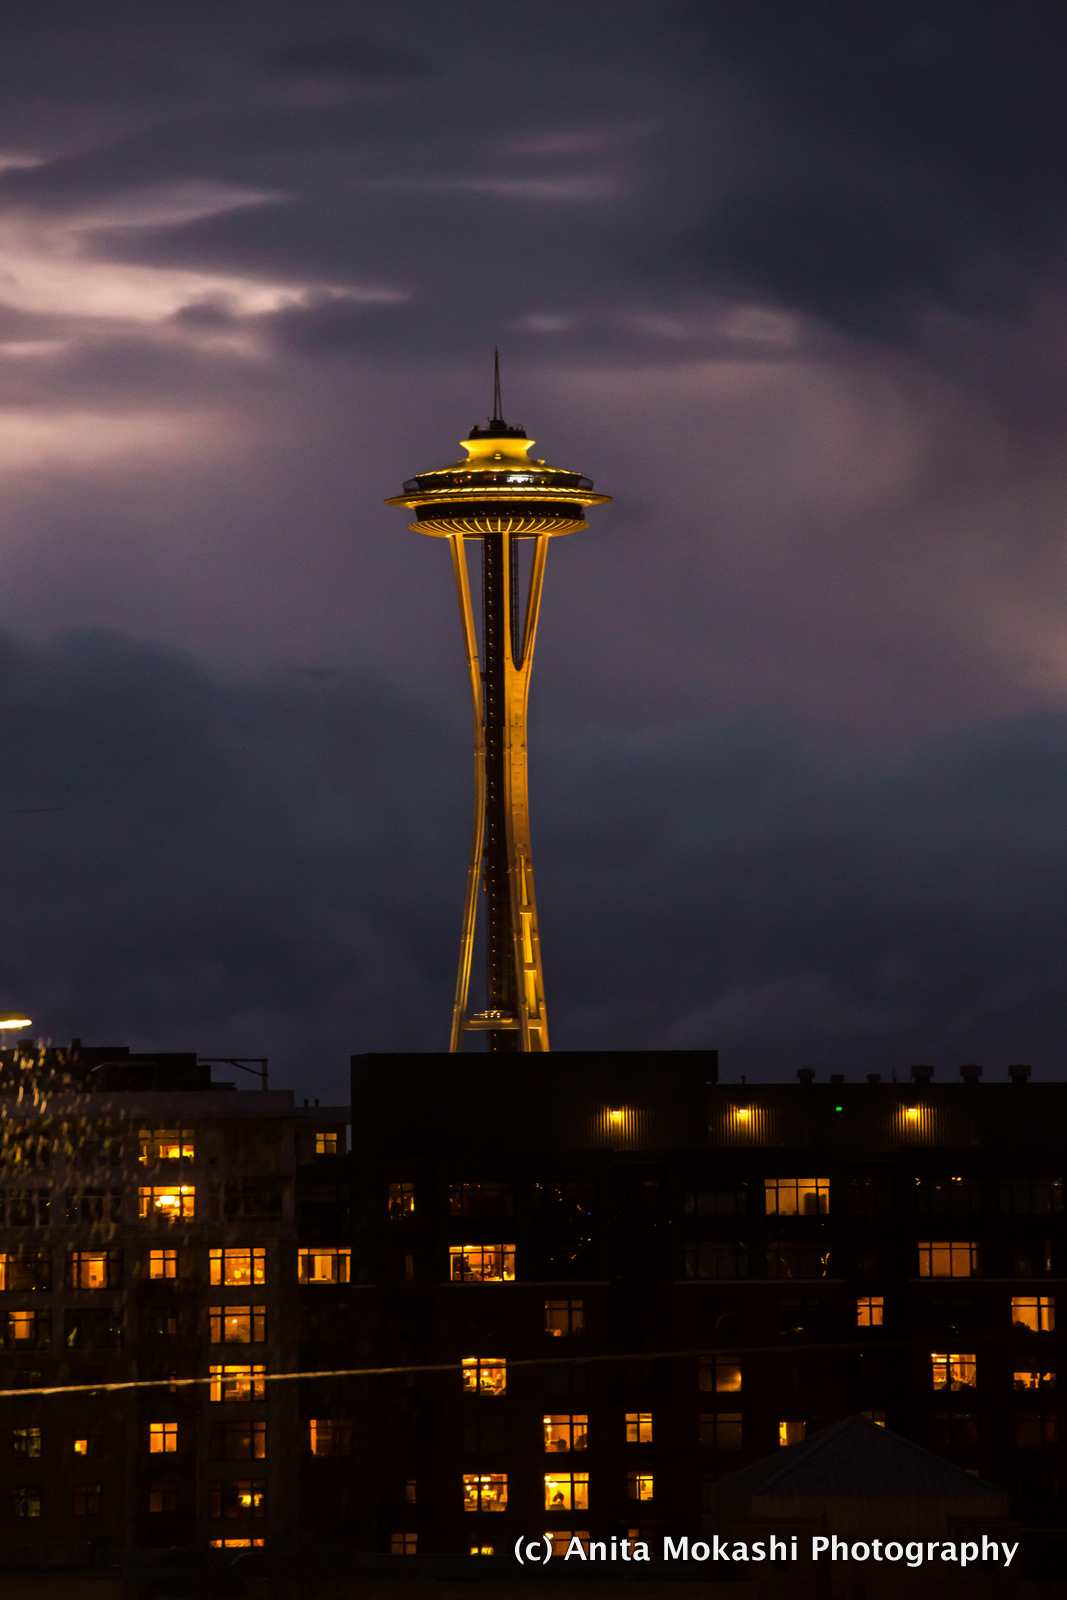 Seattle Travelogues, Things to do in Seattle, Skagit Tulip Festive, Space Needle., Pikes Place Market, Snoqualmie Falls, The 1st Starbucks, Chihuly Garden and Glass, Travel Blog,  Travel Itinerary, Must see places in seattle